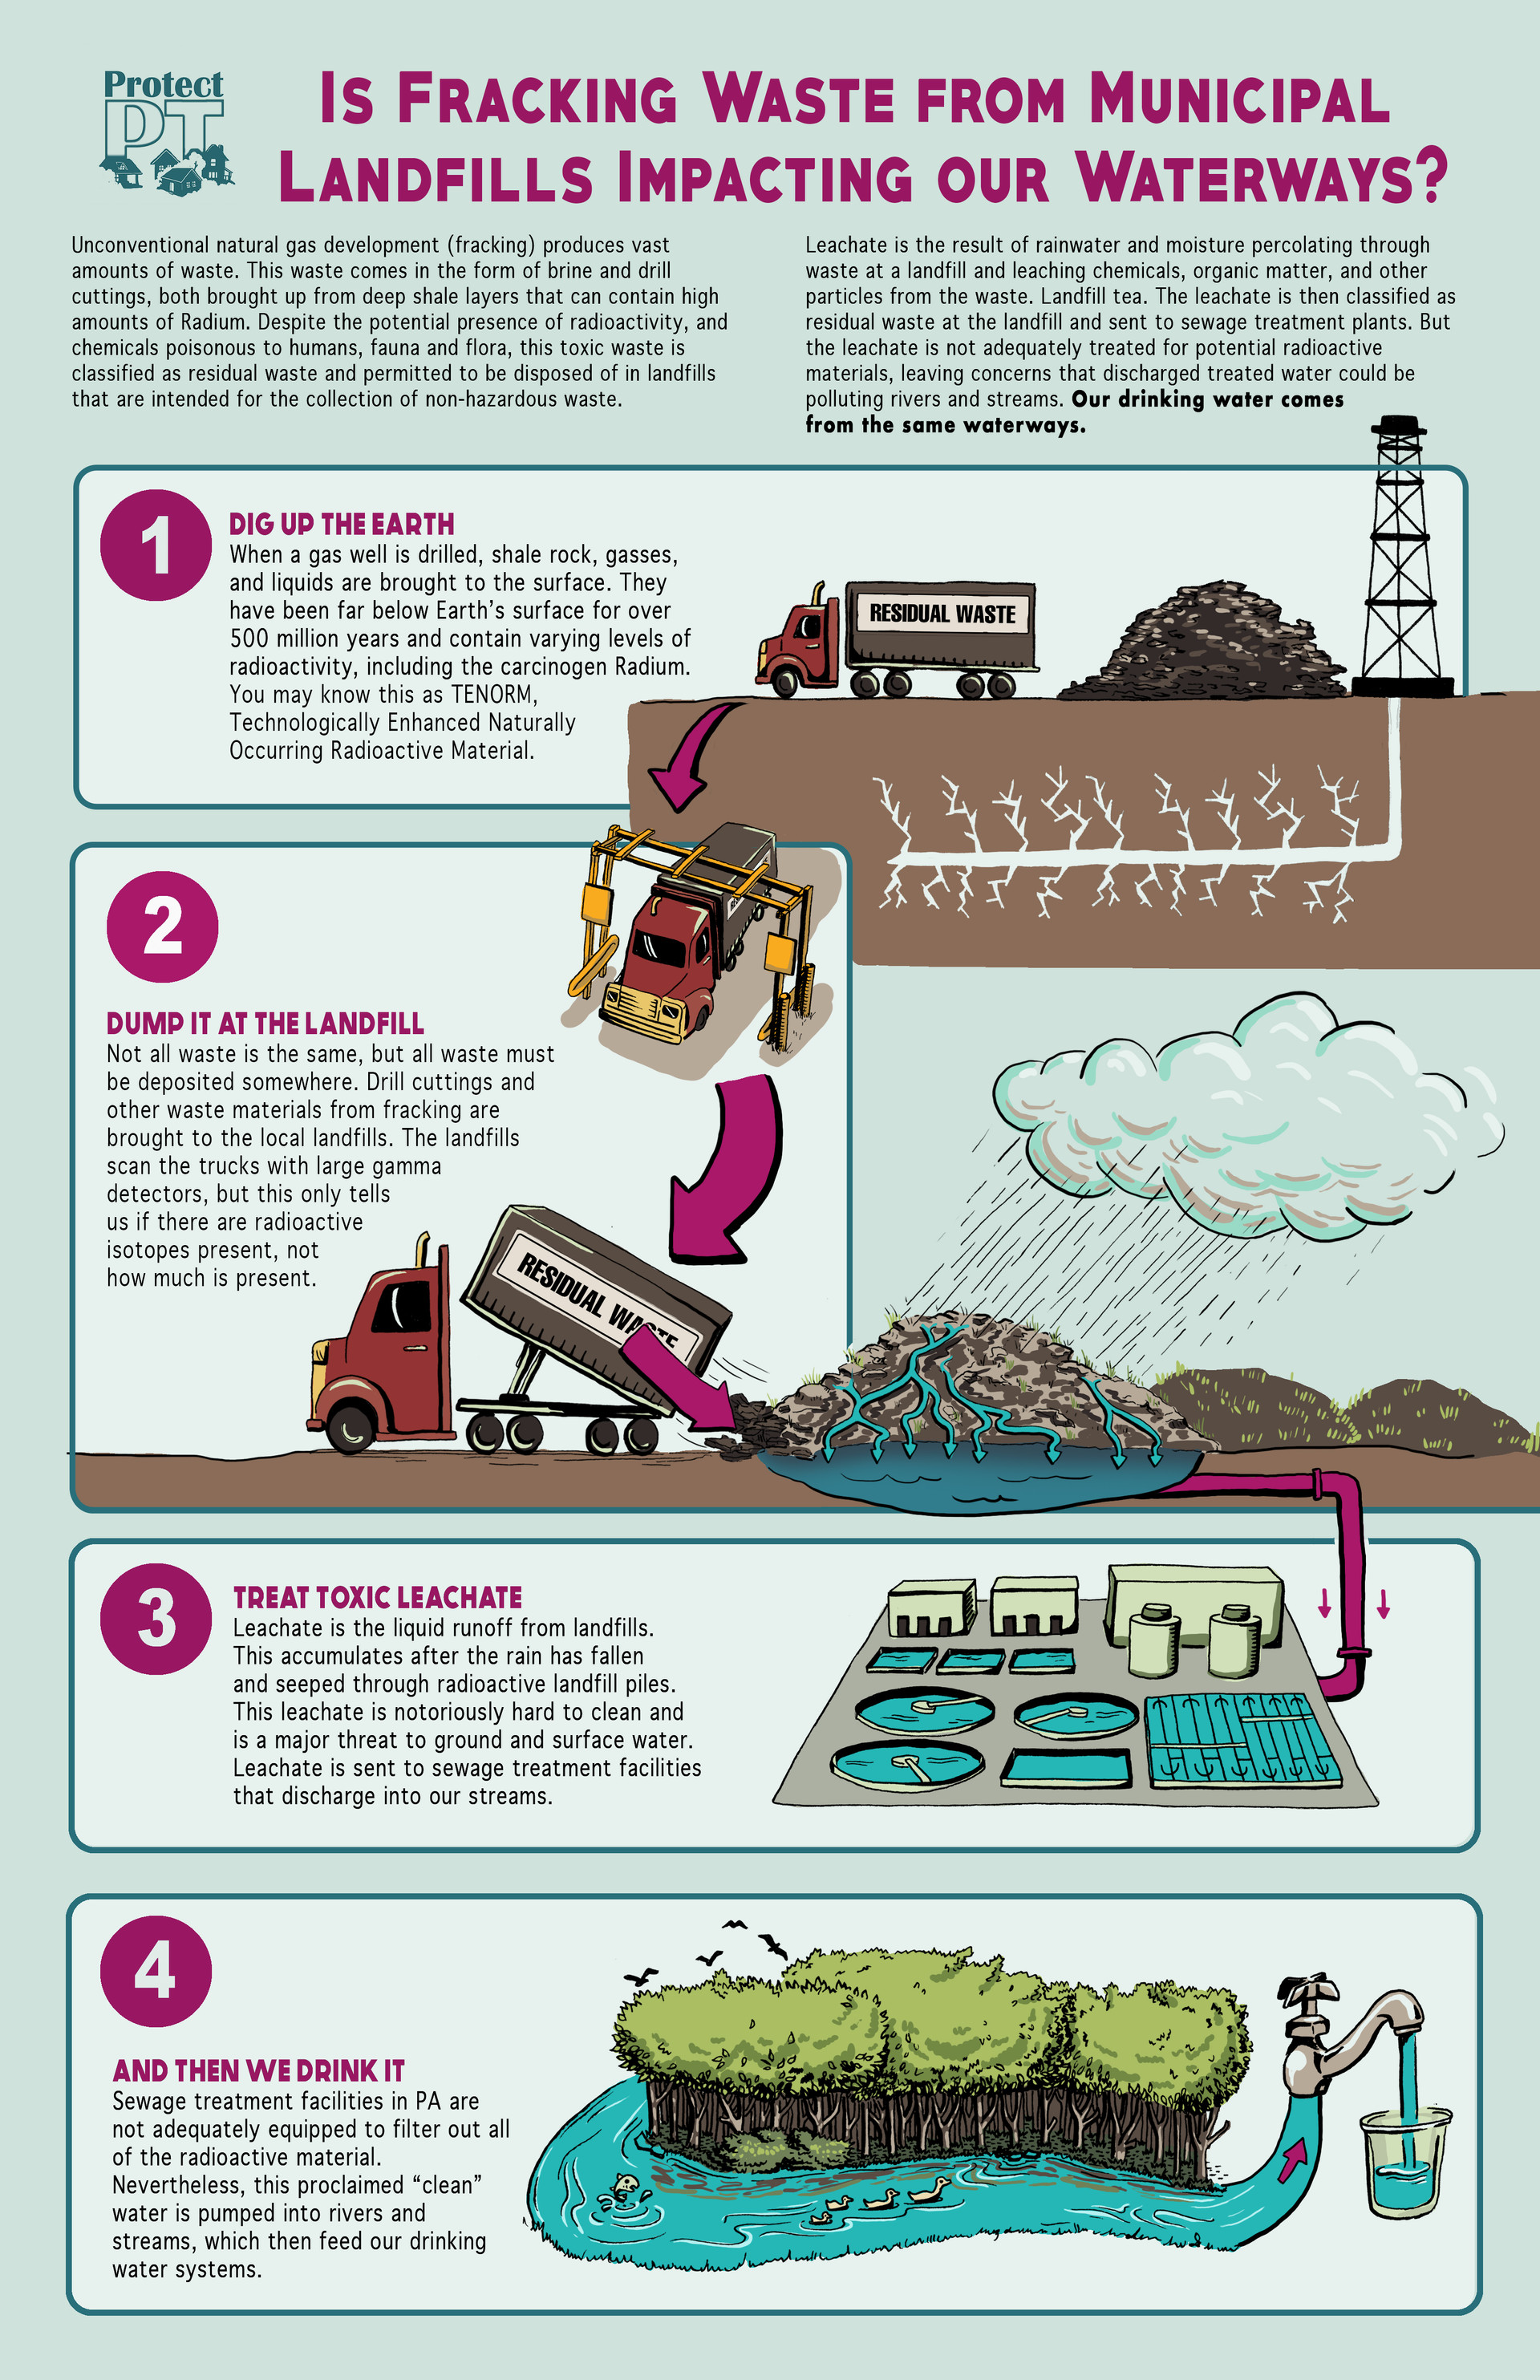 PPT_Leachate_Infographic_Color2_300dpi.j